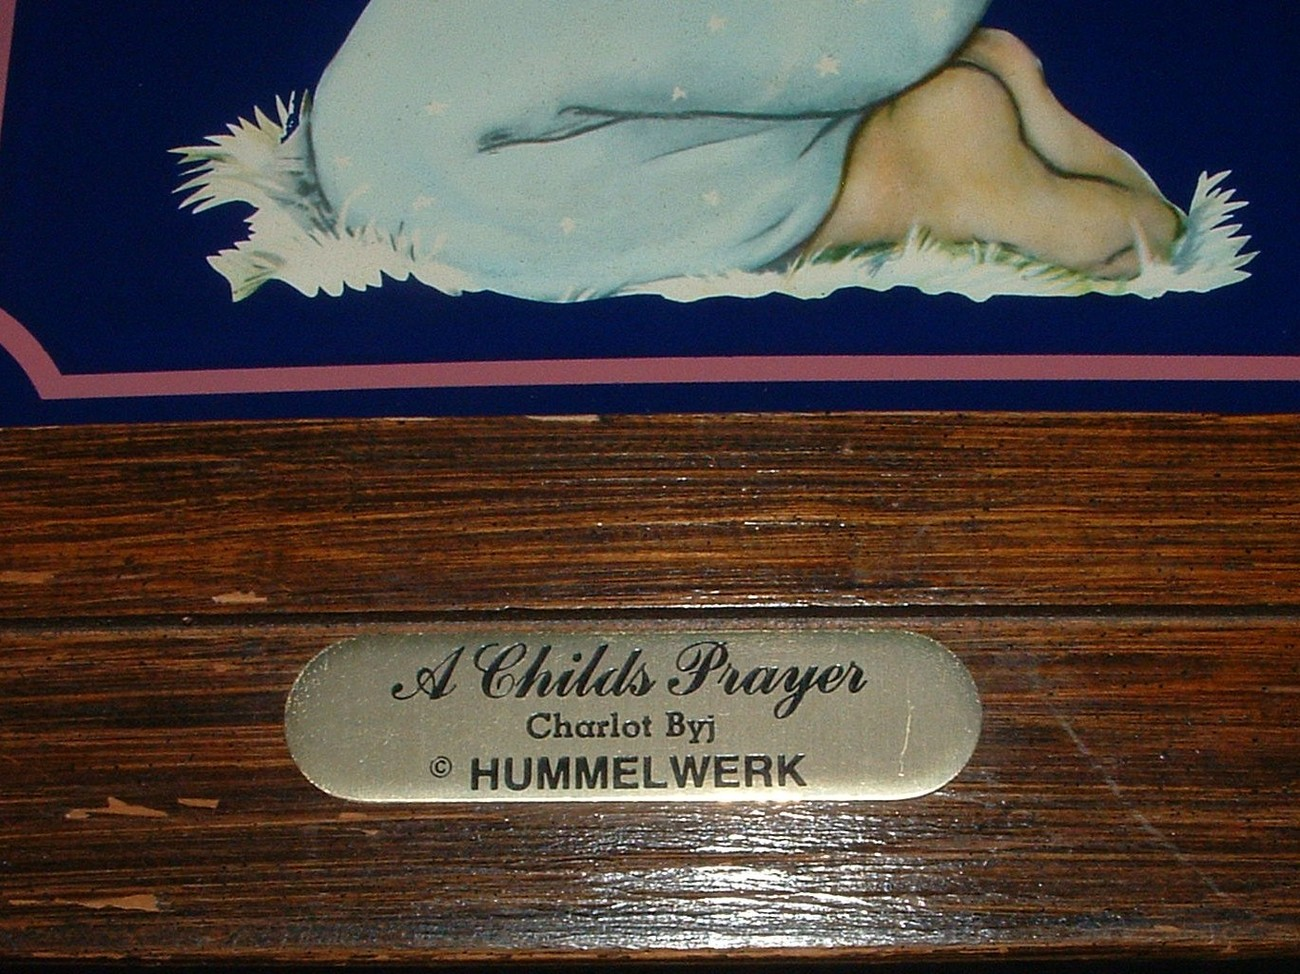 CHARLOT BYJ ~ A CHILDS PRAYER BY HUMMELWERKS FRAMED PICTURE